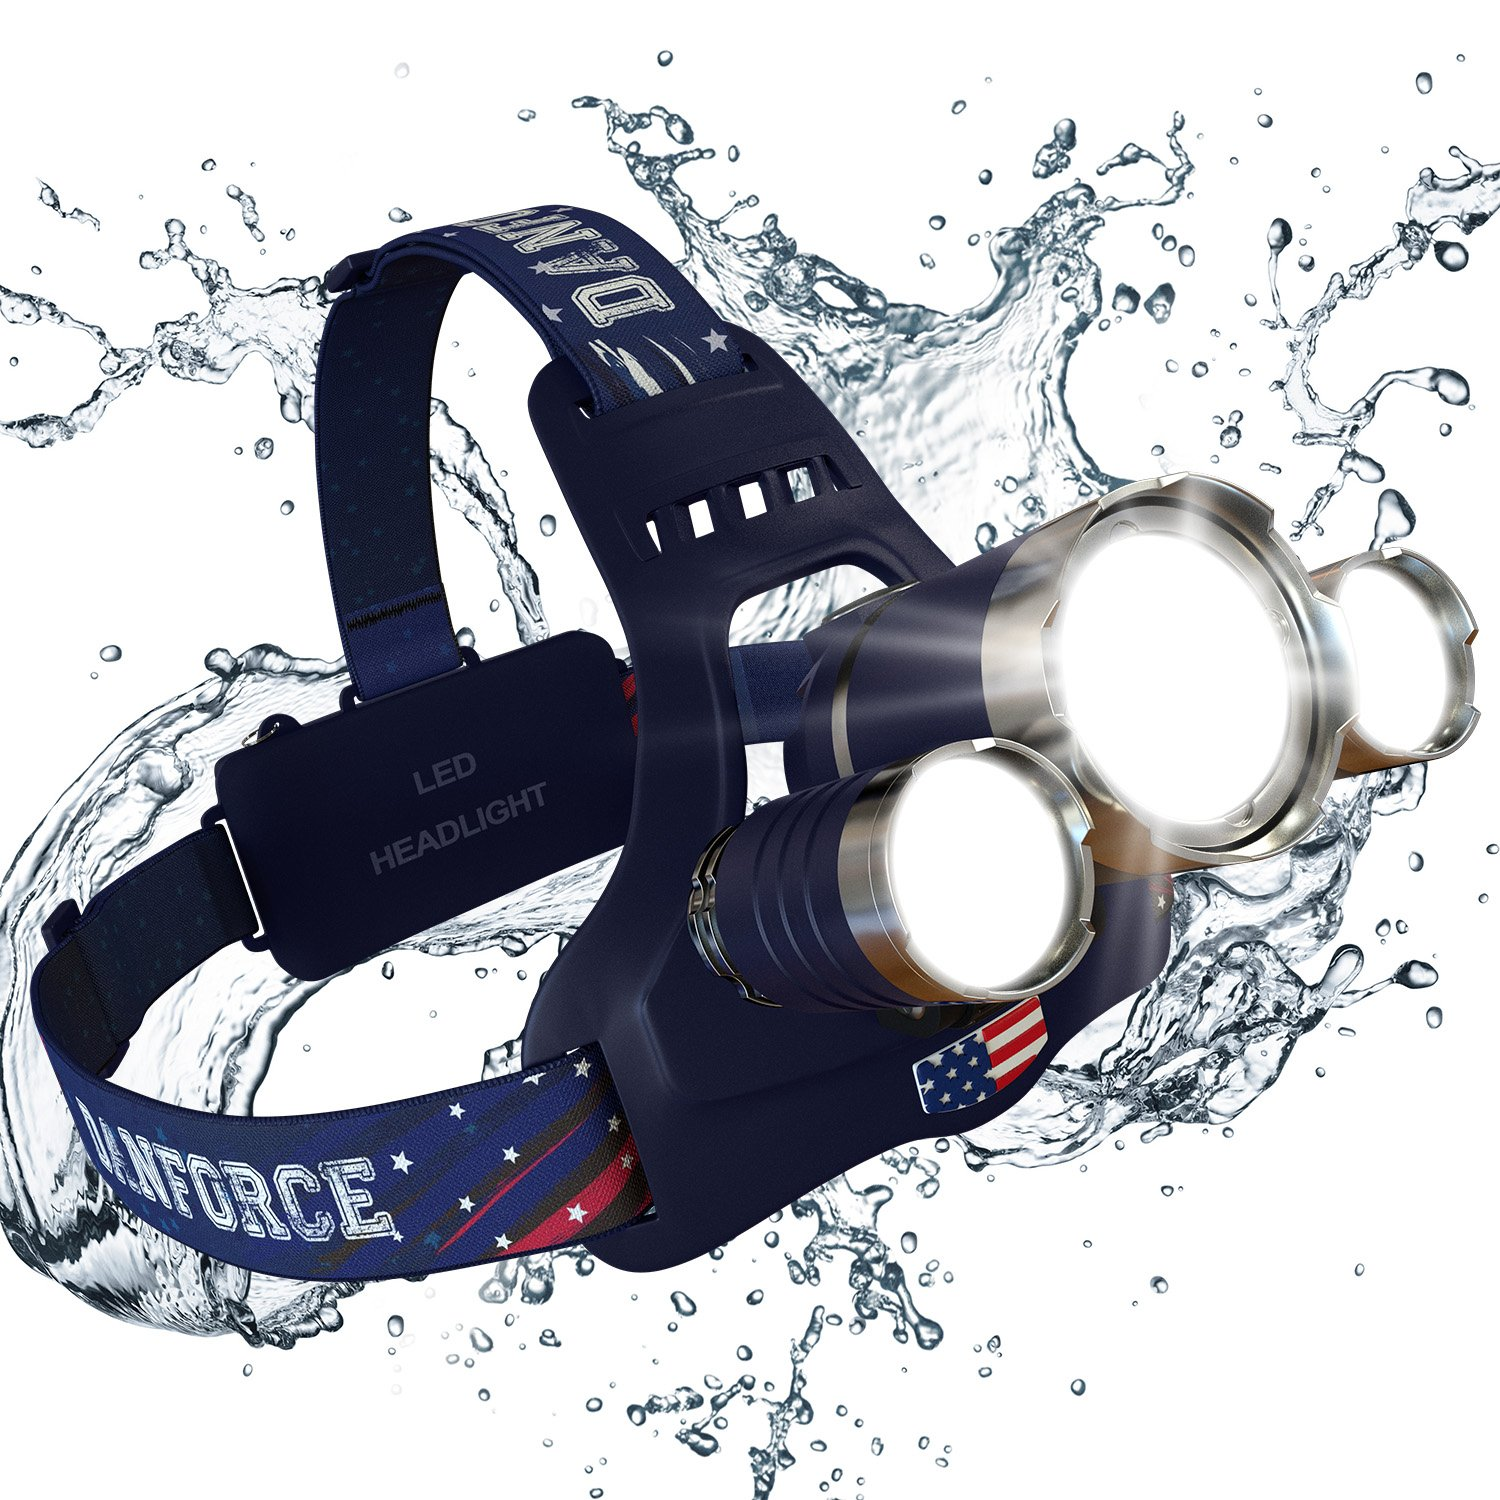 NEWEST And BEST Version Headlamp, Brightest Head Lamp Provide 6000 Lumens with 3 Original Cree Led. 2 Powerful Rechargeable Batteries, Maximum Comfort Headlamps For Outdoor & Indoor, With Red Light.